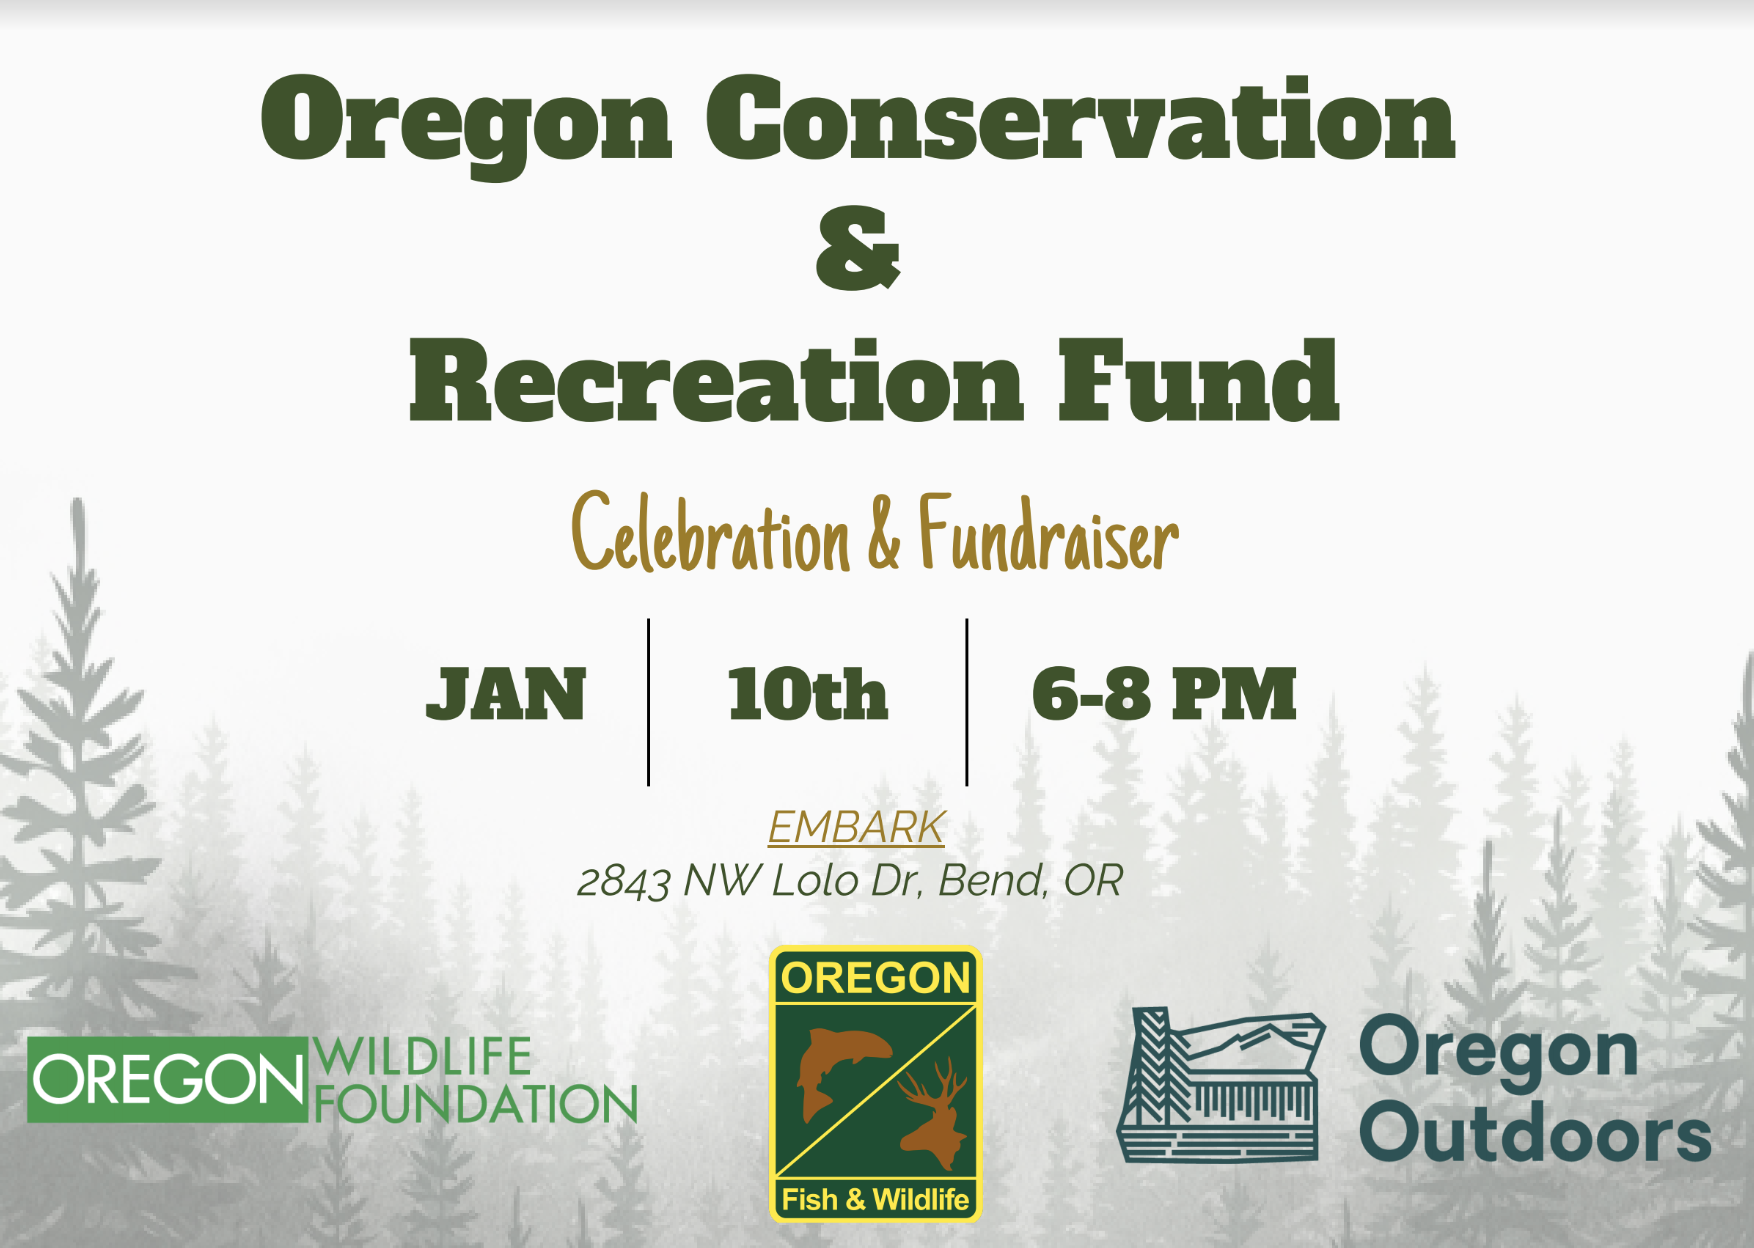 Oregon Conservation and Recreation Fund – Celebration & Fundraiser